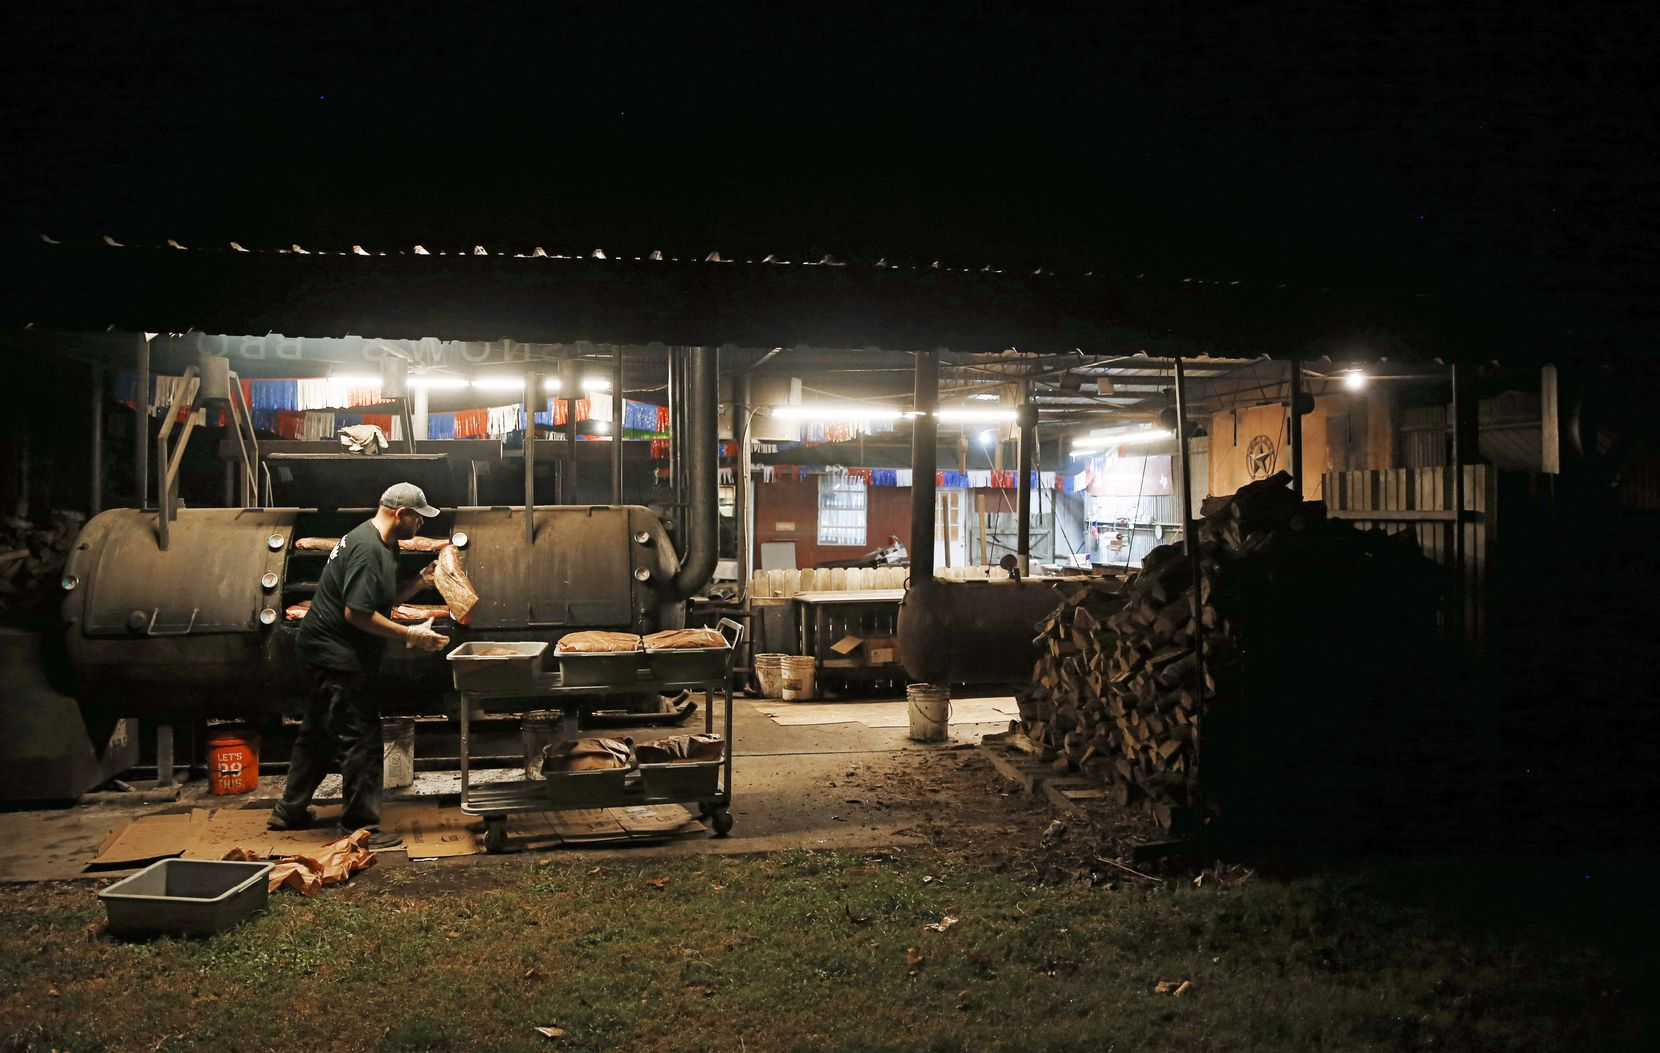 Clay Cowgill works on putting the briskets on the smoker around 10 p.m. at Snow's BBQ in Lexington, Texas, on Aug. 10, 2018.